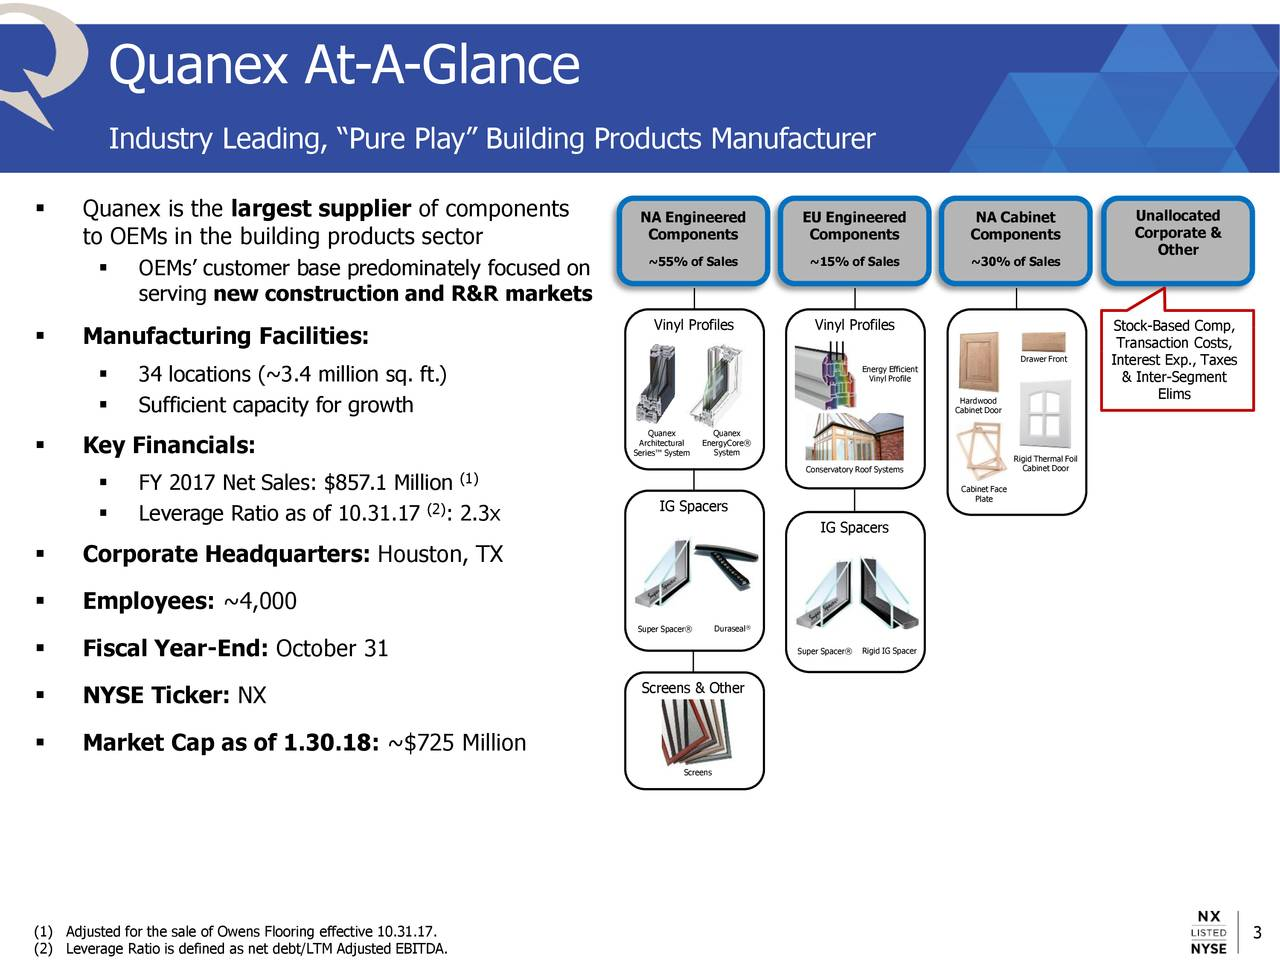 """Industry Leading, """"Pure Play"""" Building Products Manufacturer  Quanex is the largest supplier of components NA Engineered EU Engineered NA Cabinet Unallocated Components Components Components Corporate & to OEMs in the building products sector Other ~55% of Sales ~15% of Sales ~30% of Sales  OEMs' customer base predominately focused on serving new construction and R&R markets Vinyl Profiles Vinyl Profiles Stock-Based Comp,  Manufacturing Facilities: Transaction Costs, Drawer Front Energy Efficient Interest Exp., Taxes  34 locations (~3.4 million sq. ft.) Vinyl Profile & Inter-Segment Hardwood Elims  Sufficient capacity for growth Cabinet Door Quanex Quanex  Key Financials: Series™ Systemtemre® RCabinet Door Foil (1) Conservatory Roof Systems  FY 2017 Net Sales: $857.1 Million CaPlate Face (2) IG Spacers  Leverage Ratio as of 10.31.17 : 2.3x IG Spacers  Corporate Headquarters: Houston, TX  Employees: ~4,000 Super Spacer®aseal  Fiscal Year-End: October 31 Super Spacer®d IG Spacer  NYSE Ticker: NX Screens & Other  Market Cap as of 1.30.18: ~$725 Million Screens (1) Adjusted for the sale of Owens Flooring effective 10.31.17. 3"""